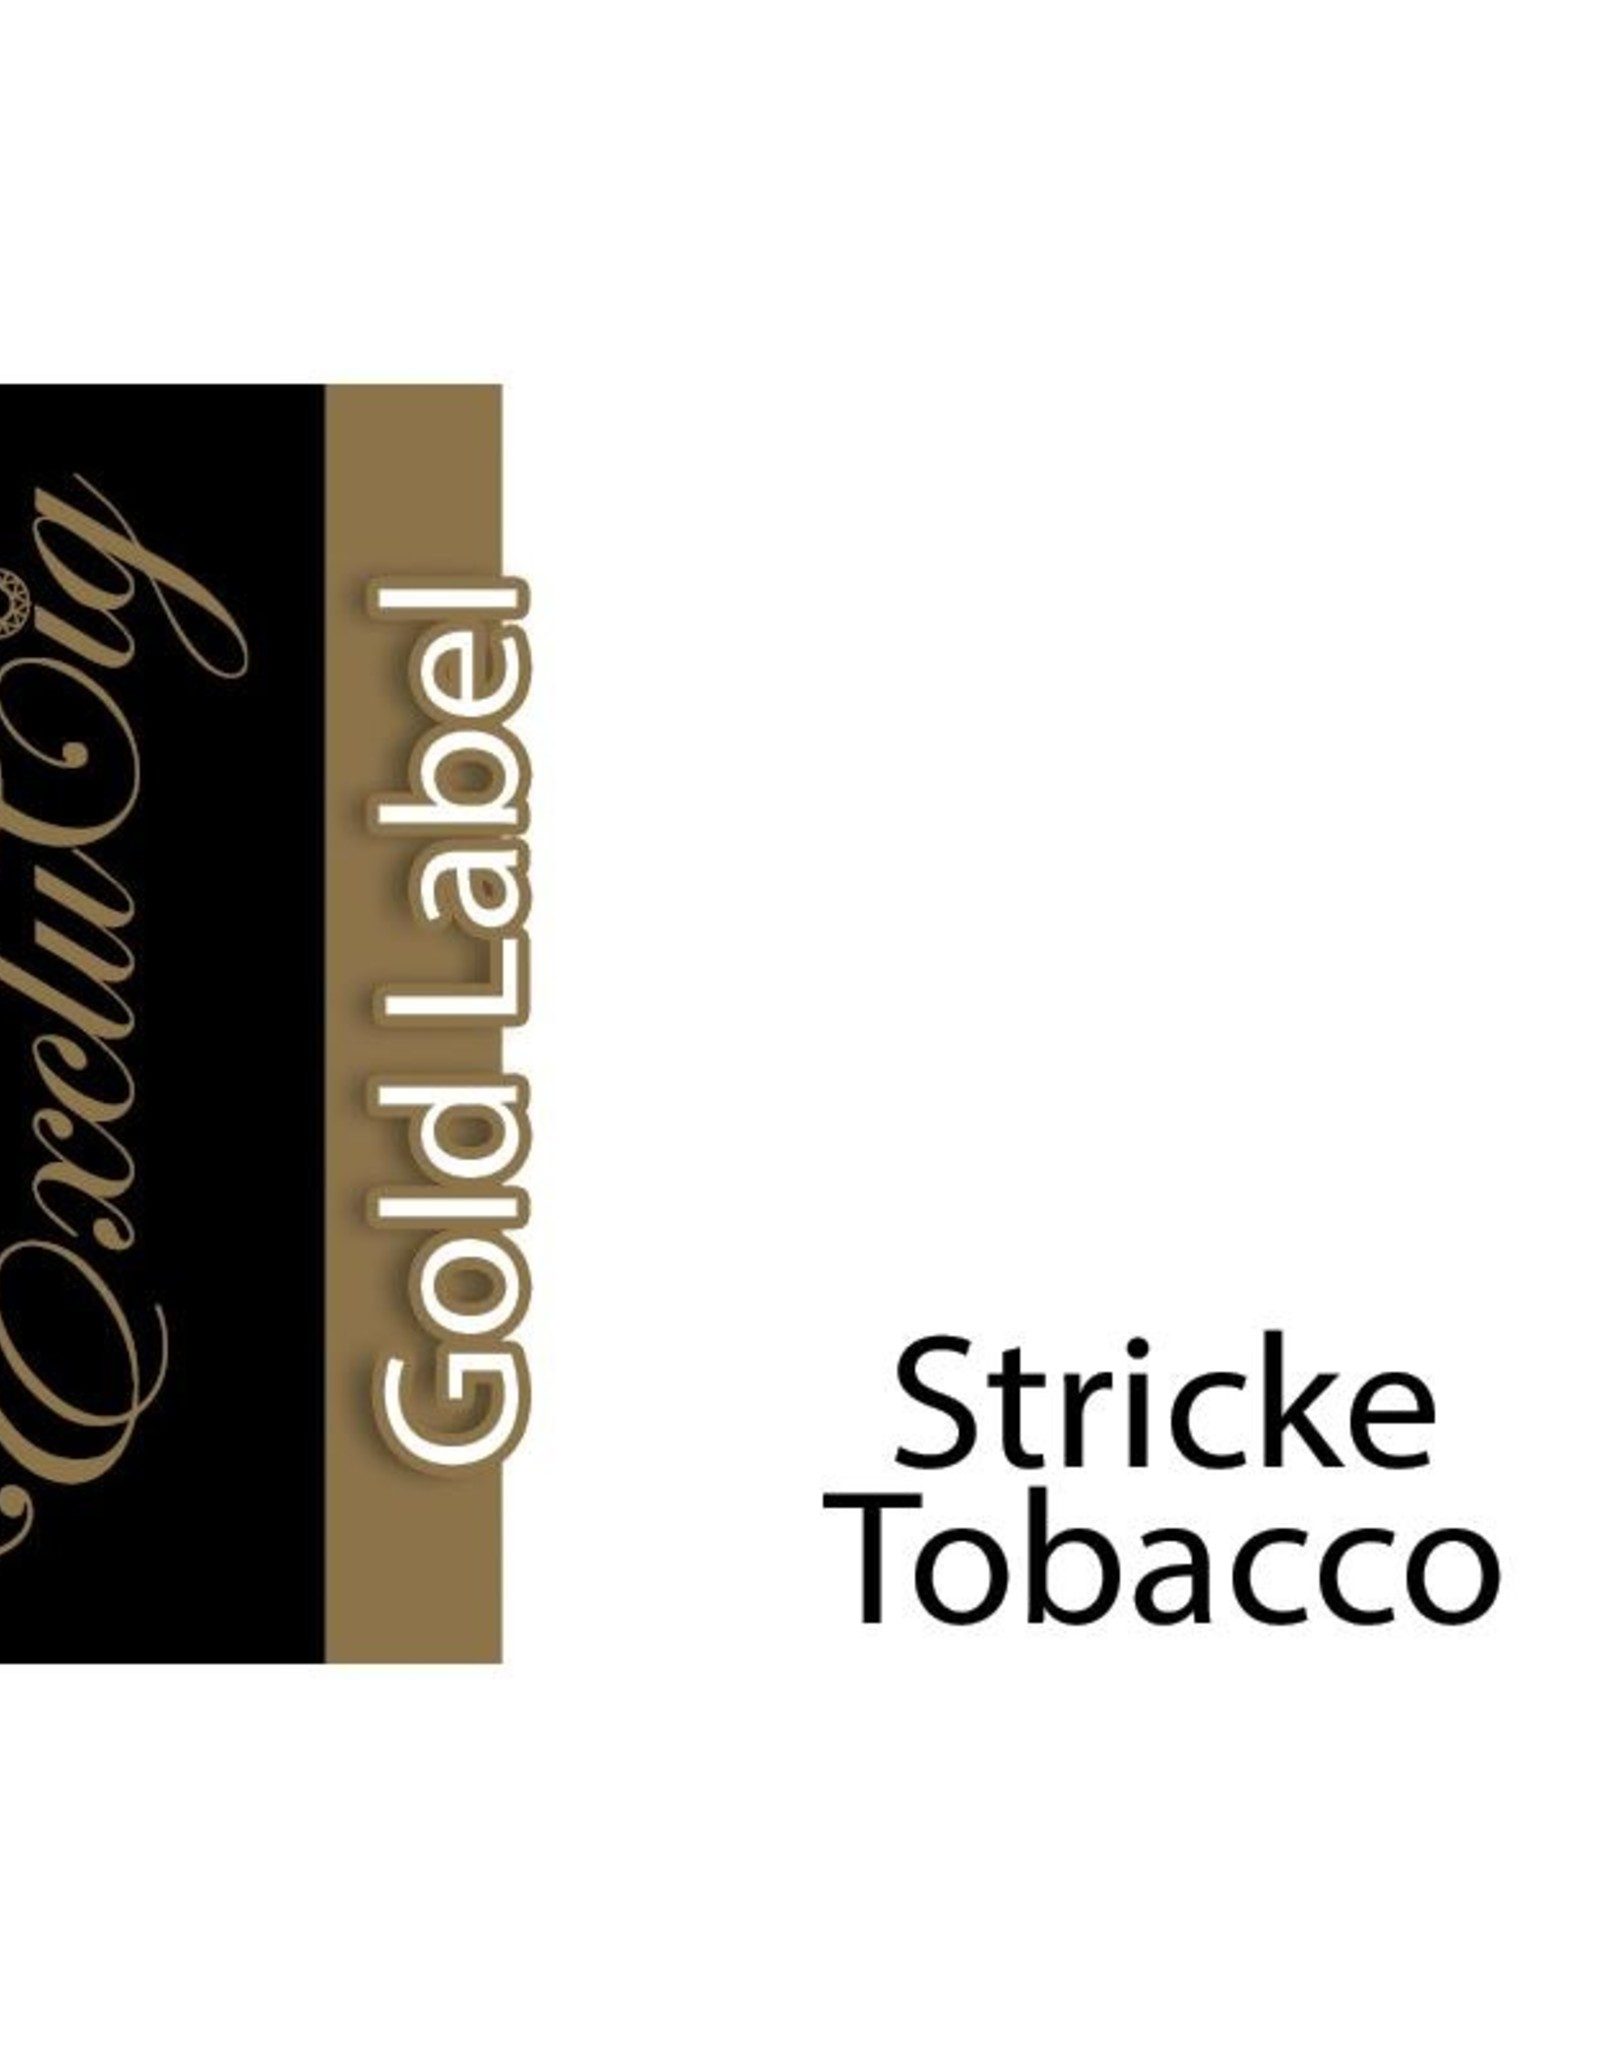 Exclucig Exclucig Gold Label E-liquid Stricke Tobacco 6 mg Nicotine